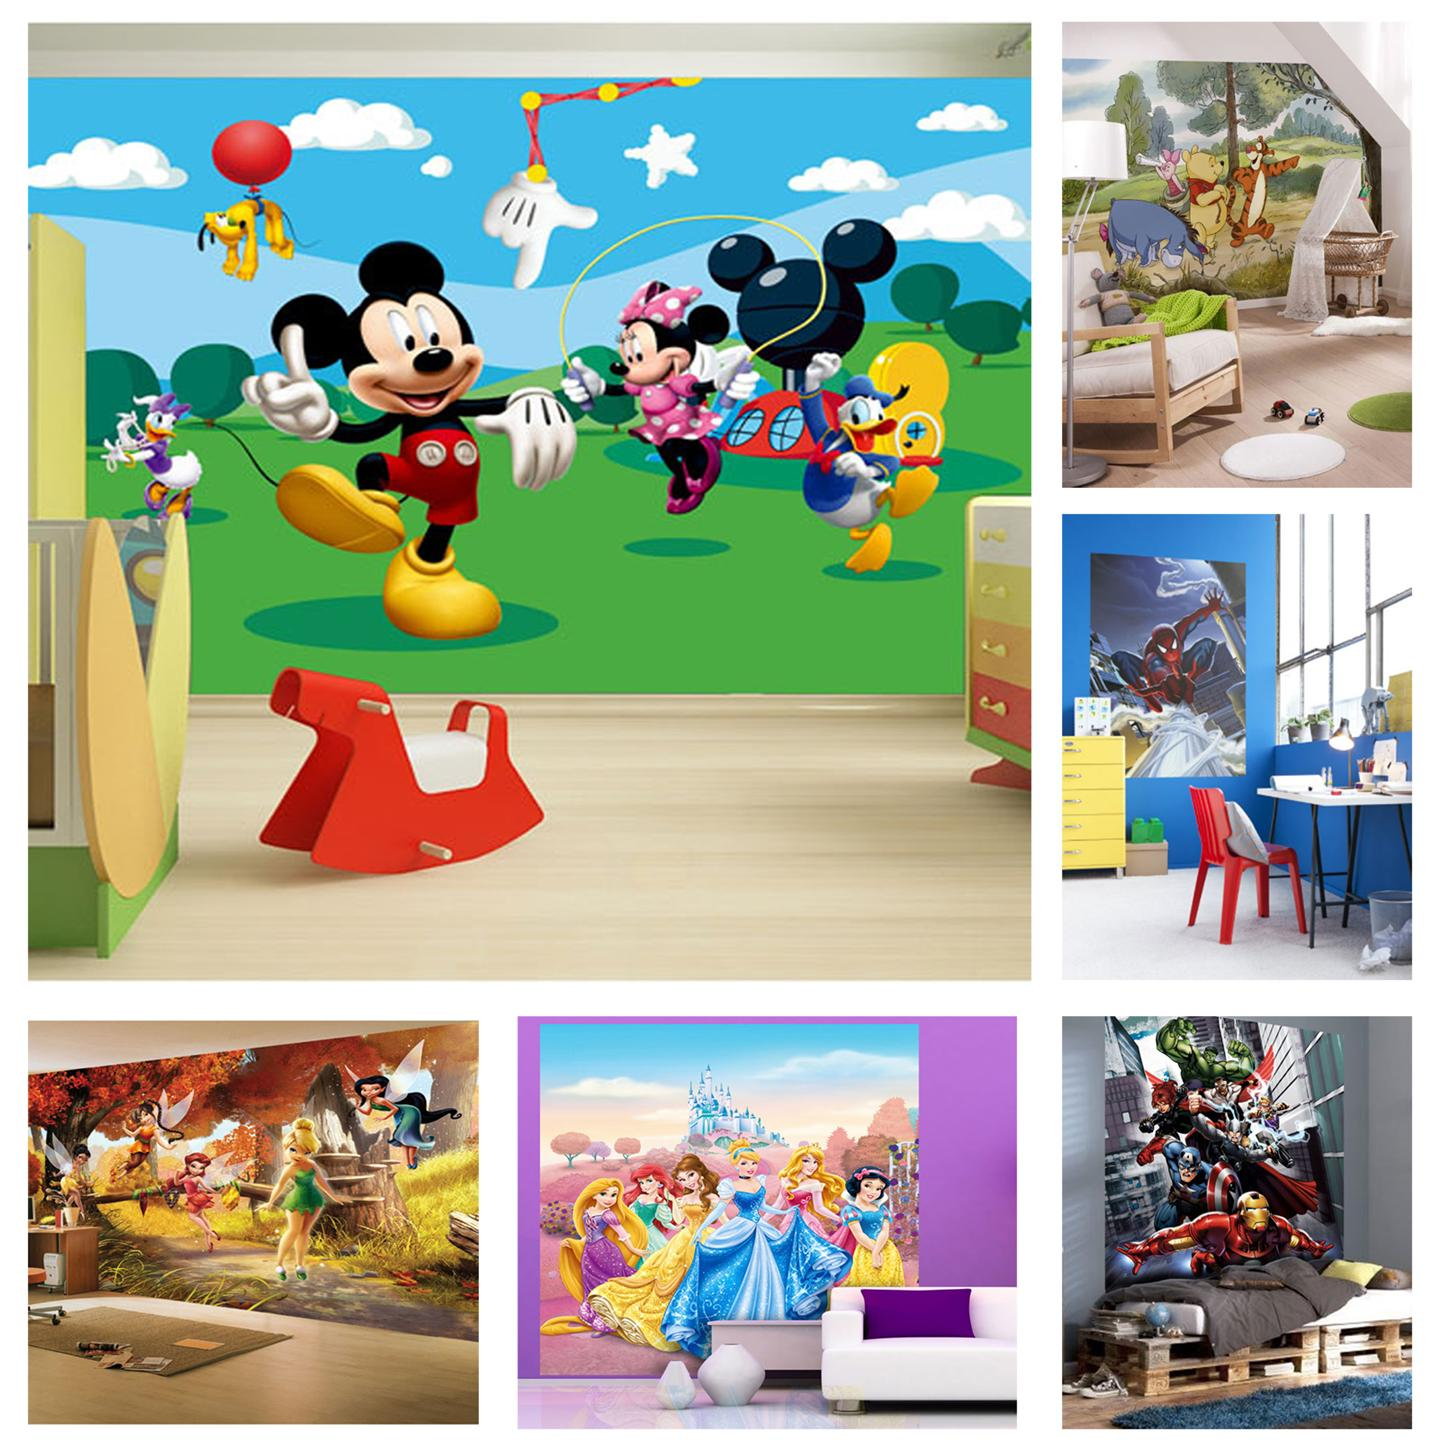 Childrens bedroom disney character wallpaper wall mural for Childrens room mural